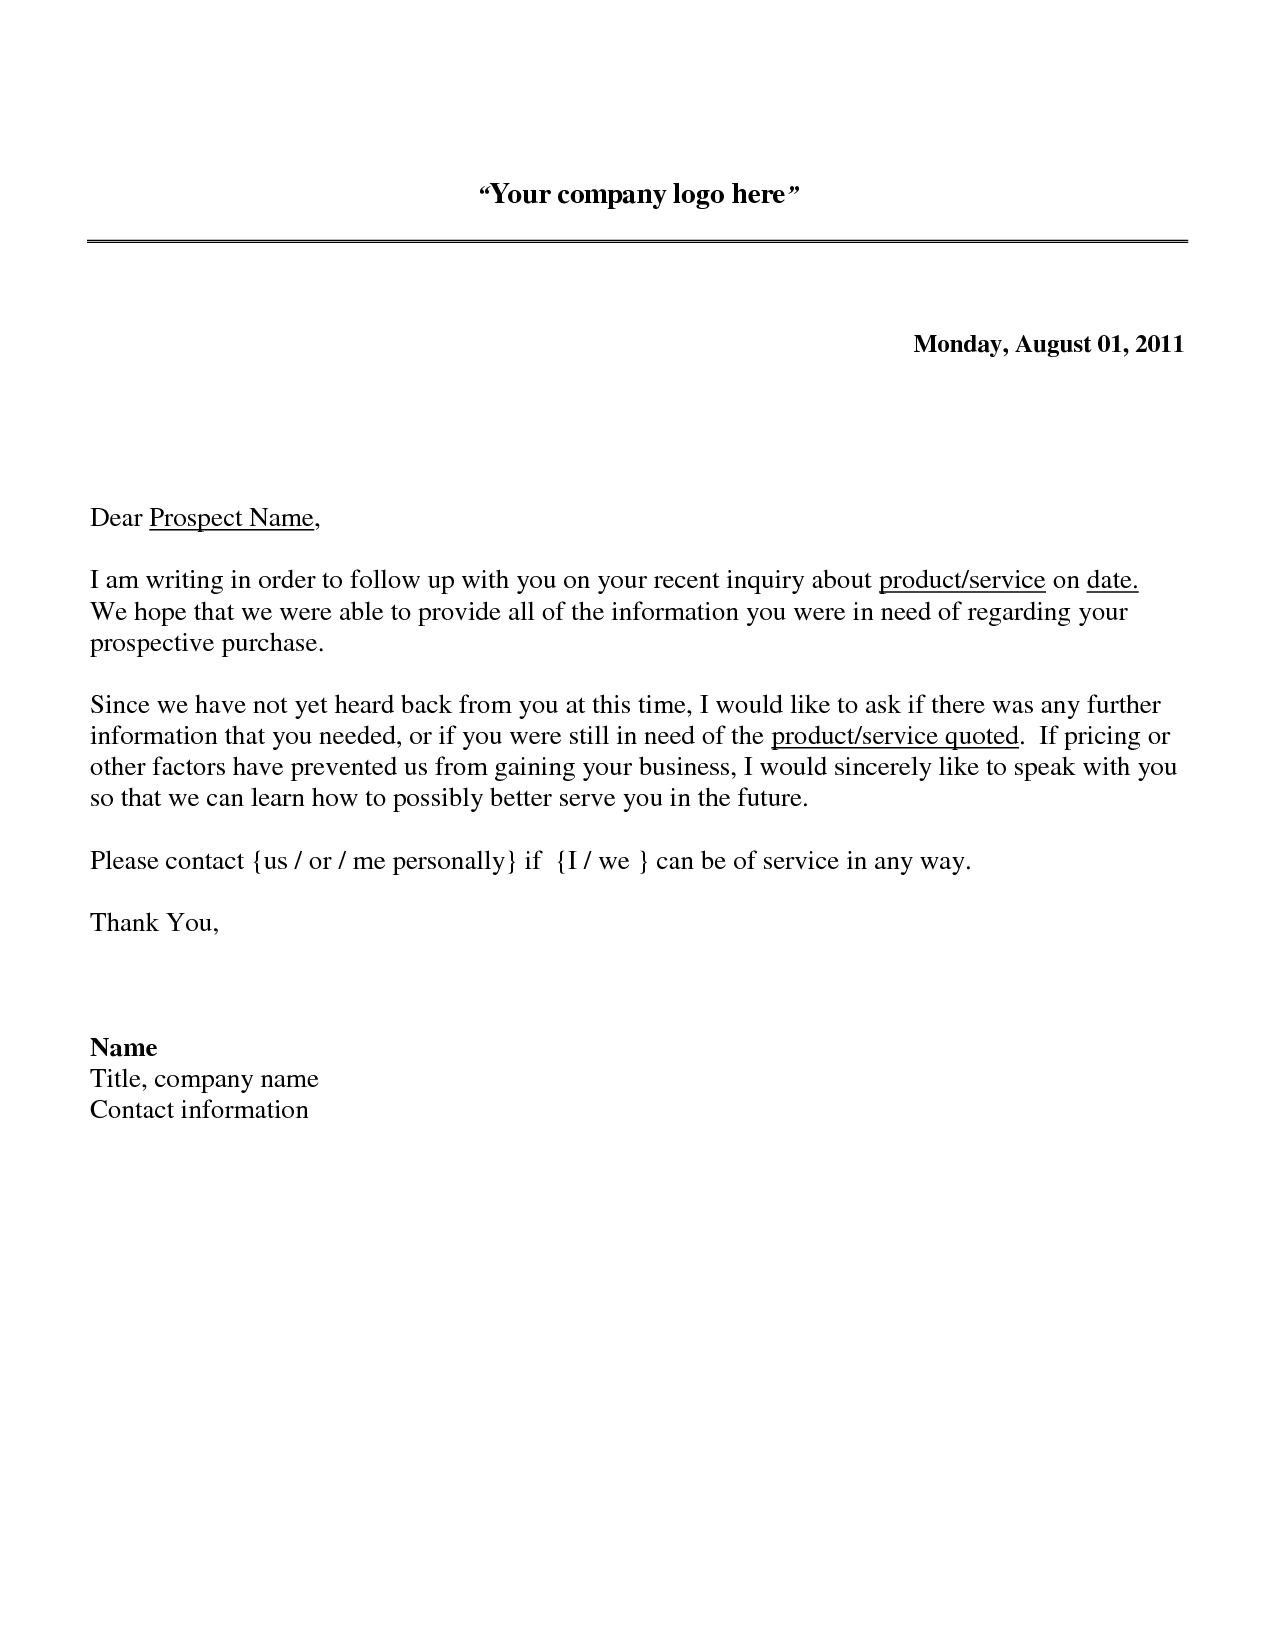 Business Teacher Cover Letter Follow Up Sales Letter  A Potential Sales Prospect Has Many